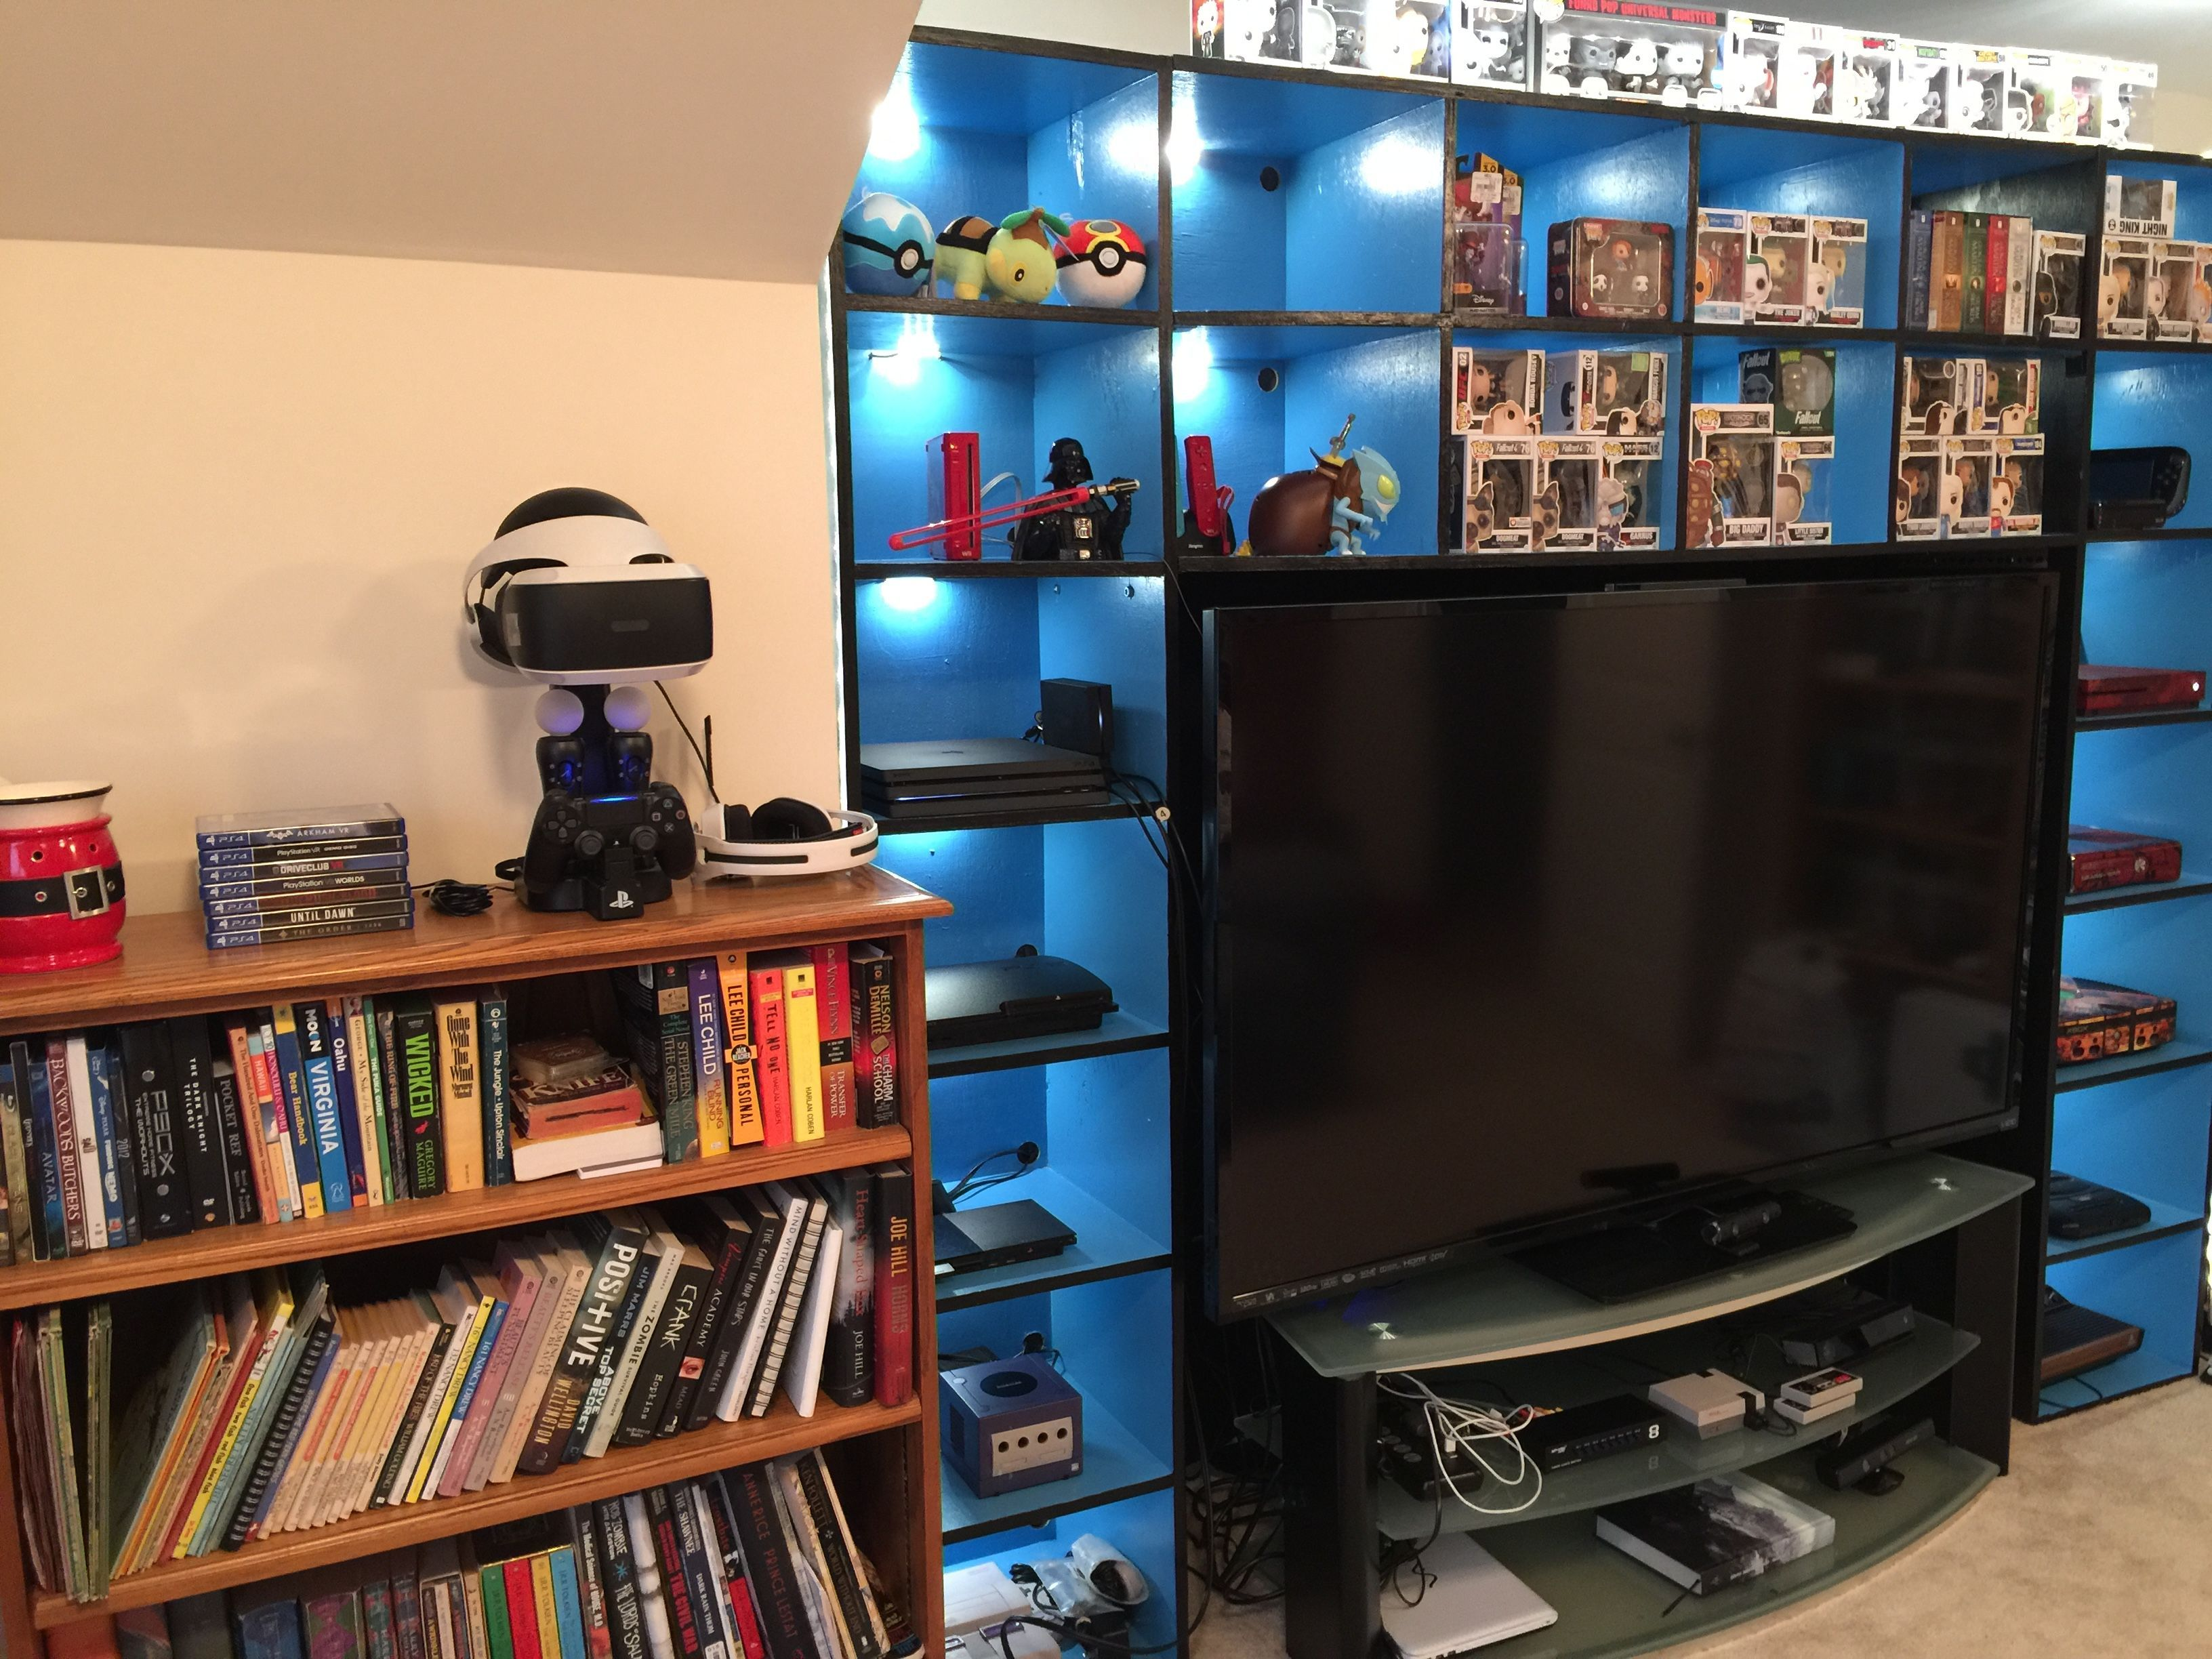 50 Video Game Room Ideas To Maximize Your Gaming Experience Video Game Shelf Video Game Rooms Game Console Shelf